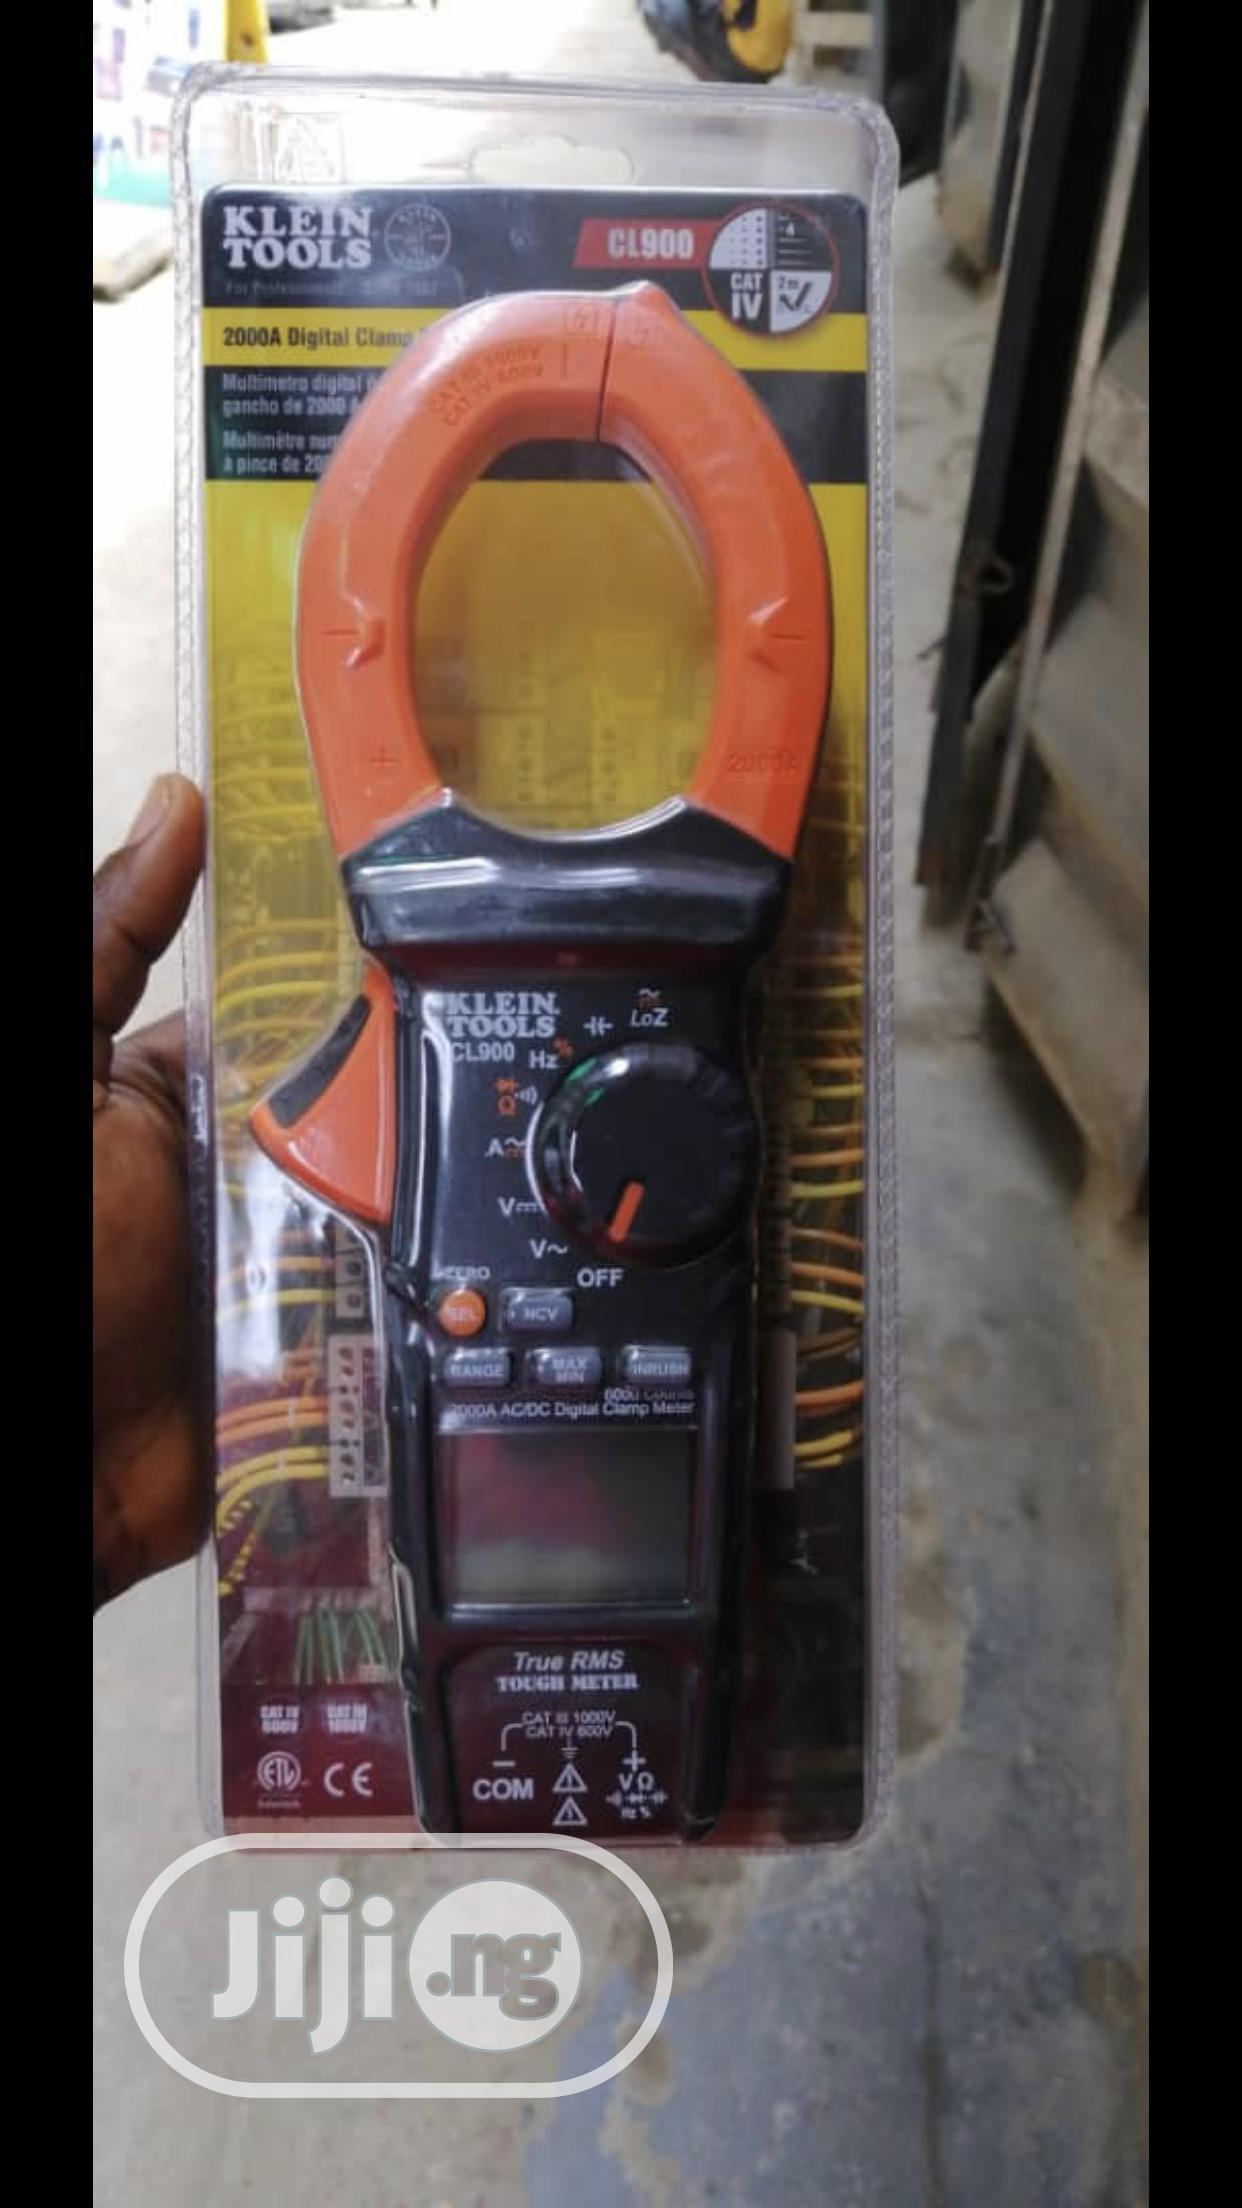 Digital Clamp Meter, Klein Tools